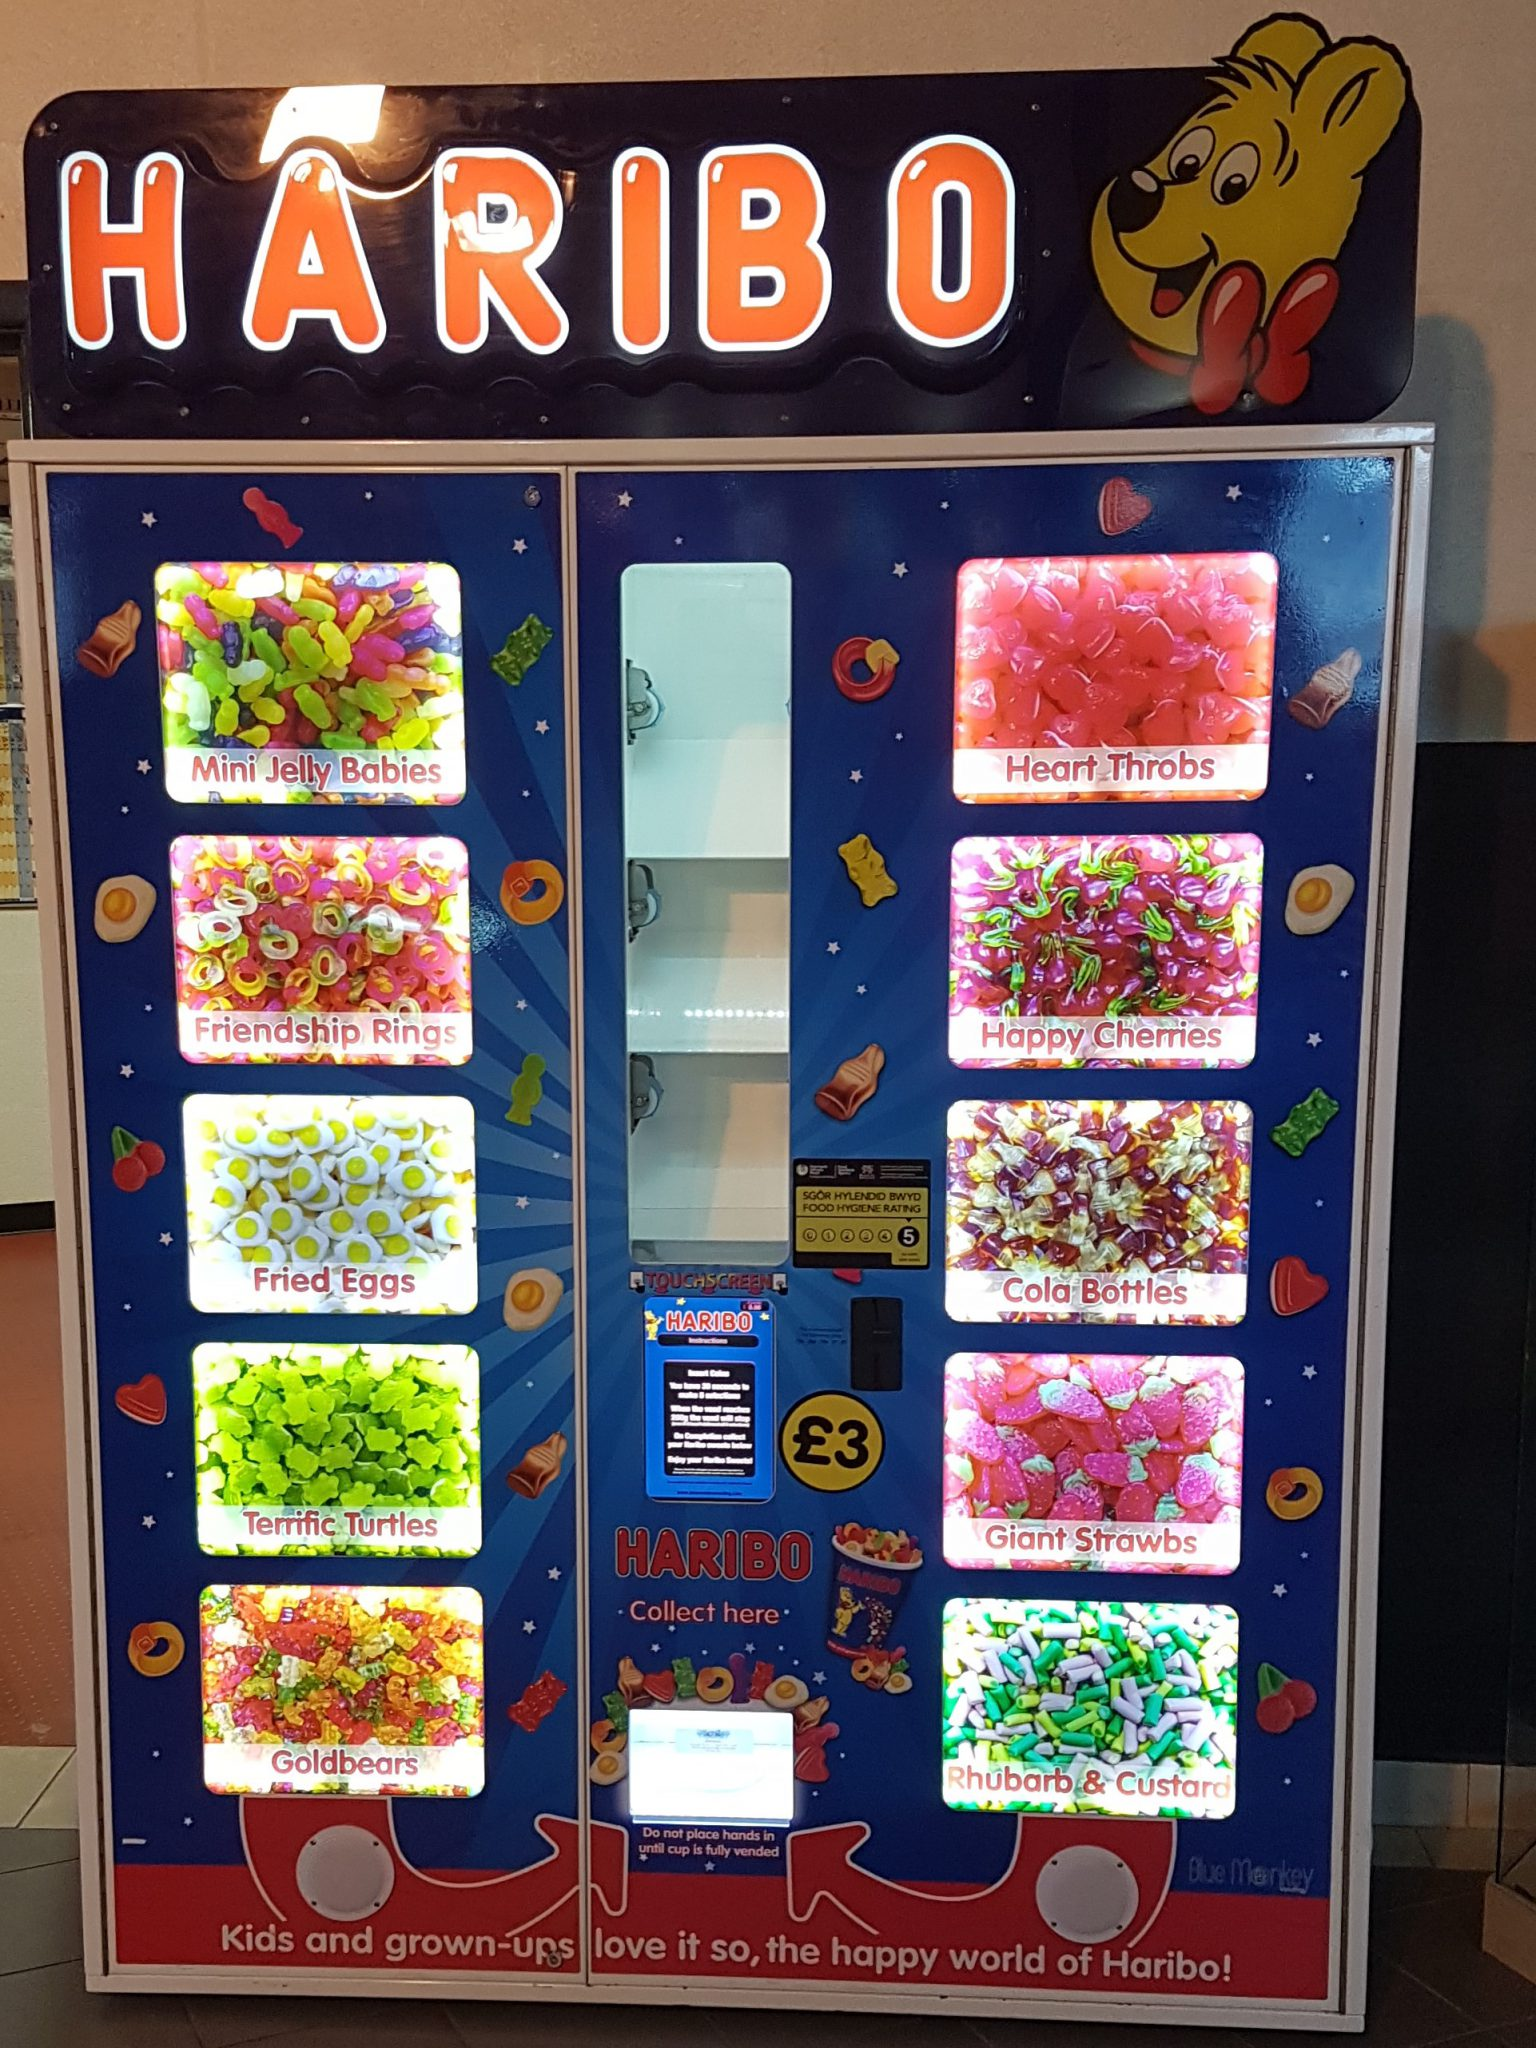 Blue Monkey Vending Haribo at Park Dean Resorts Trecco Bay